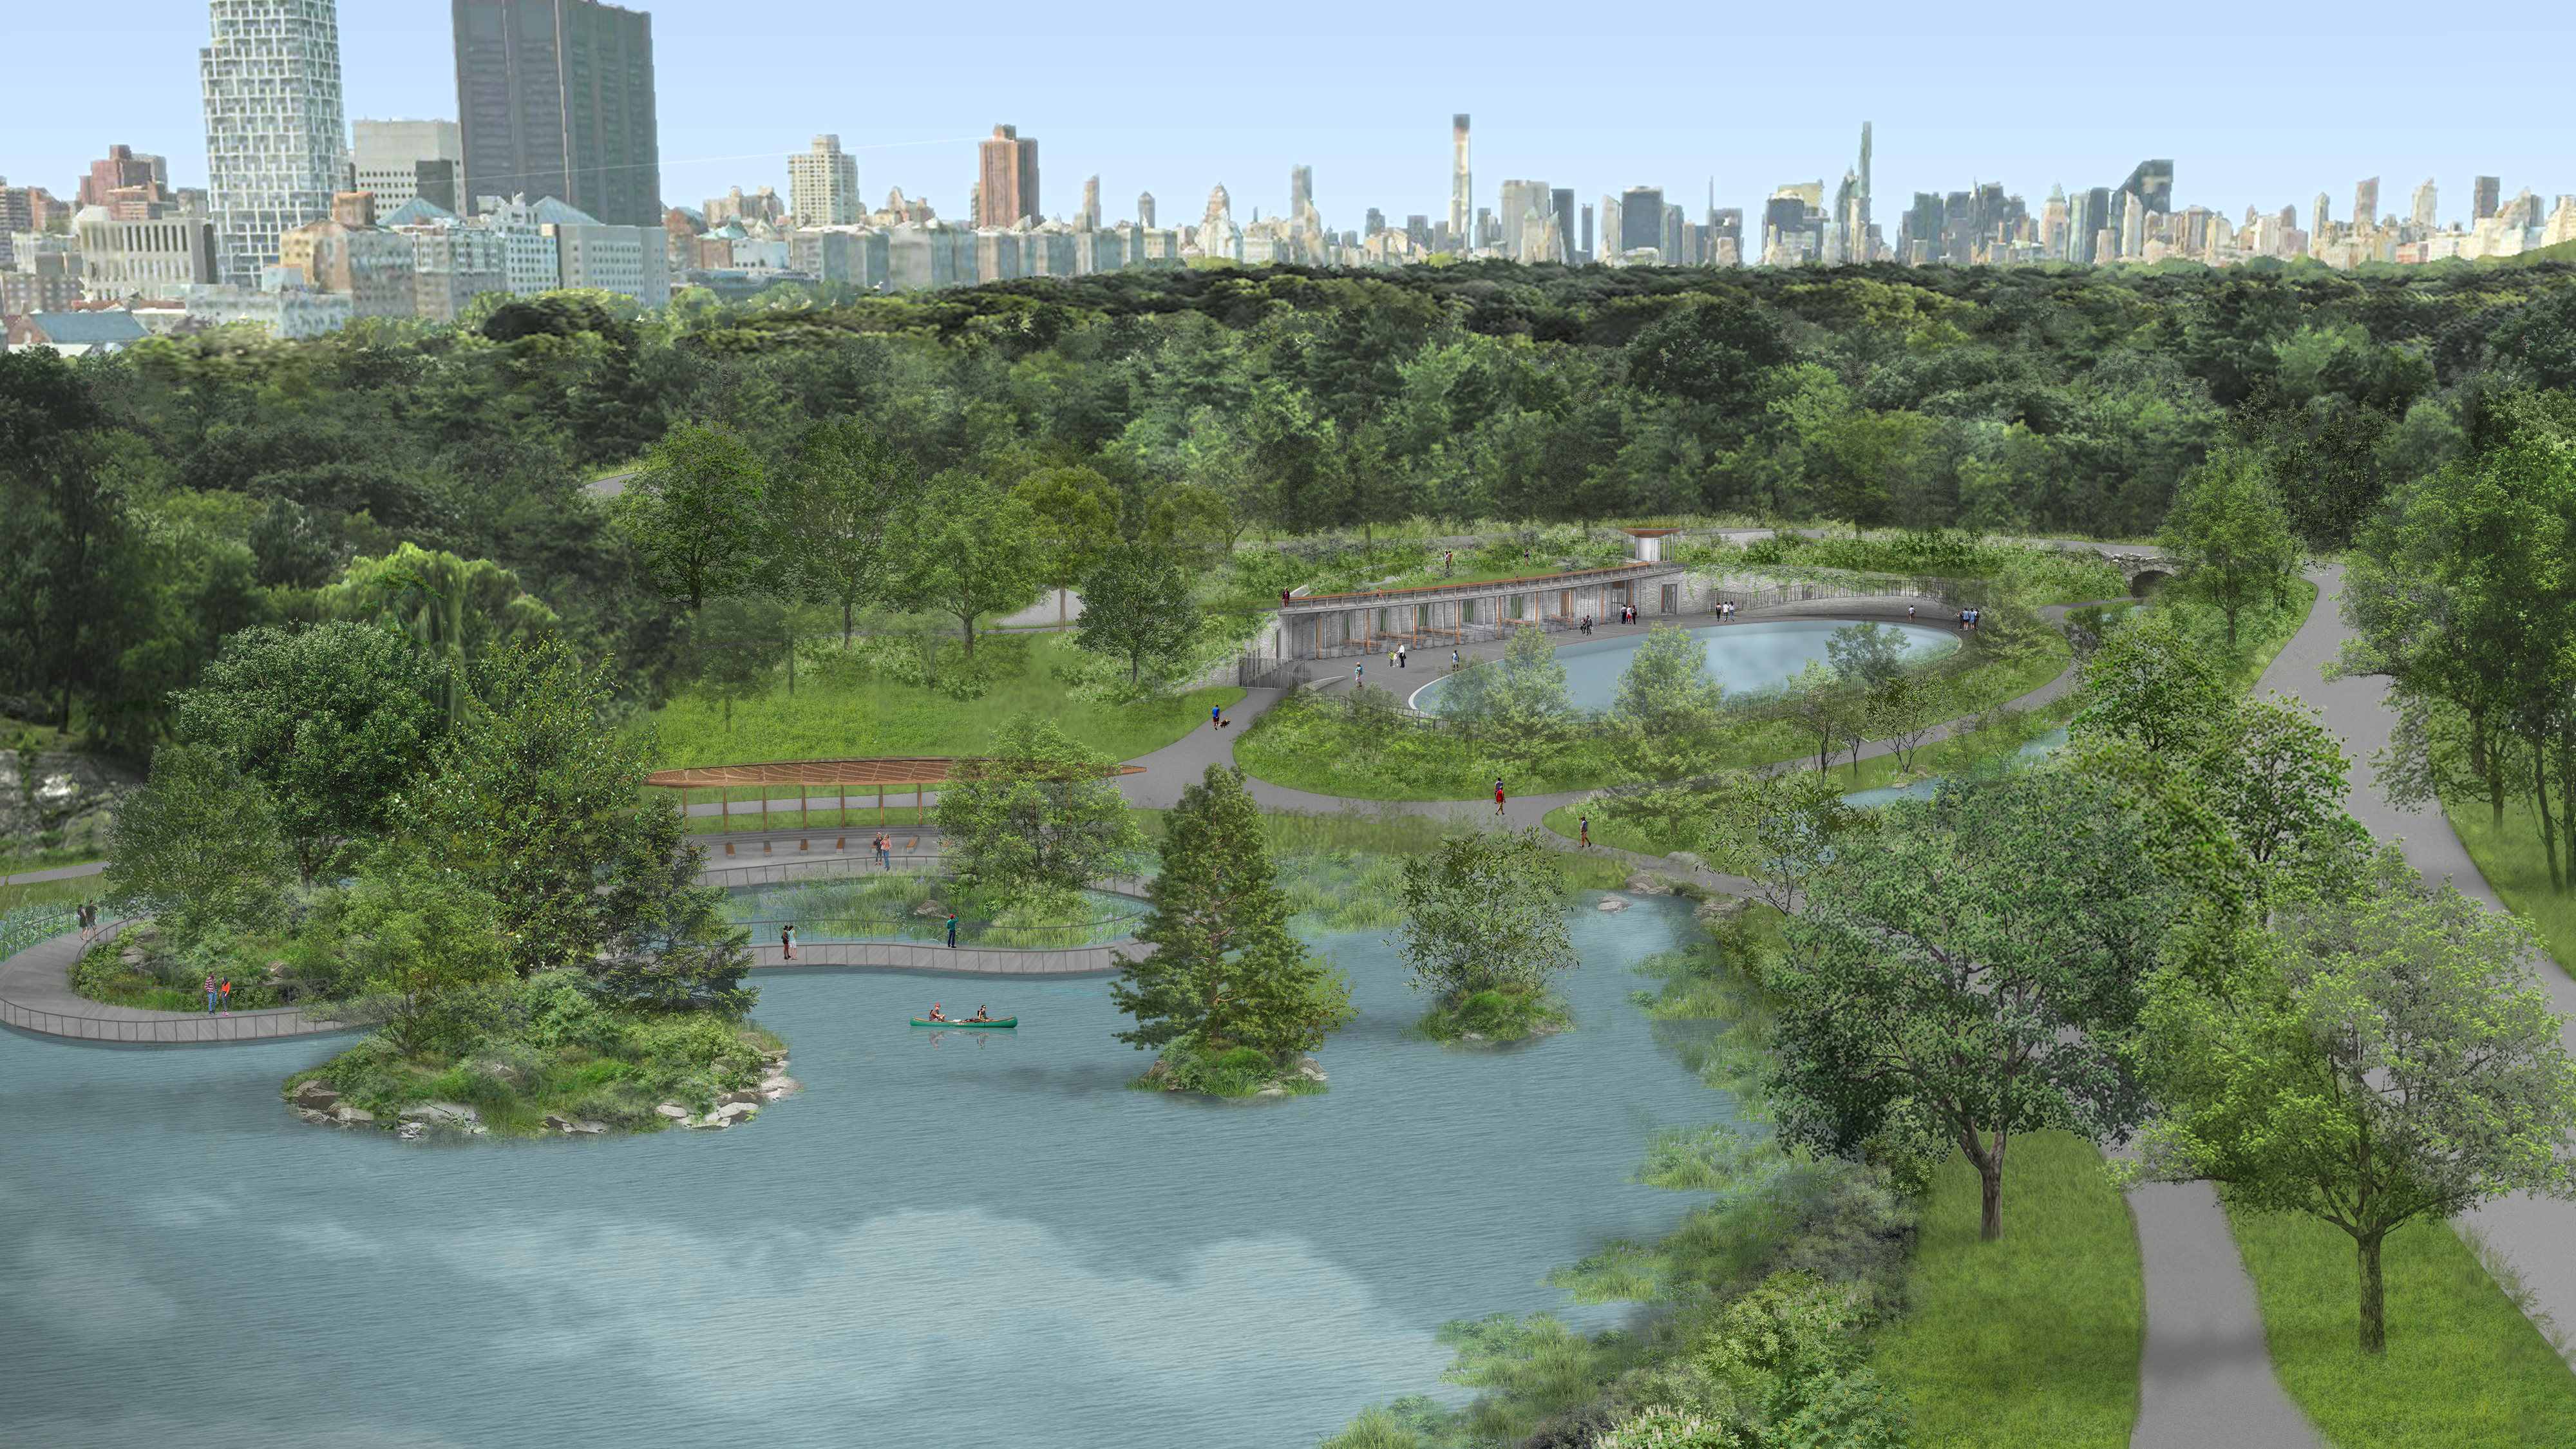 Central Park's $150M revamp includes new pool and ice rink, landscape fixes